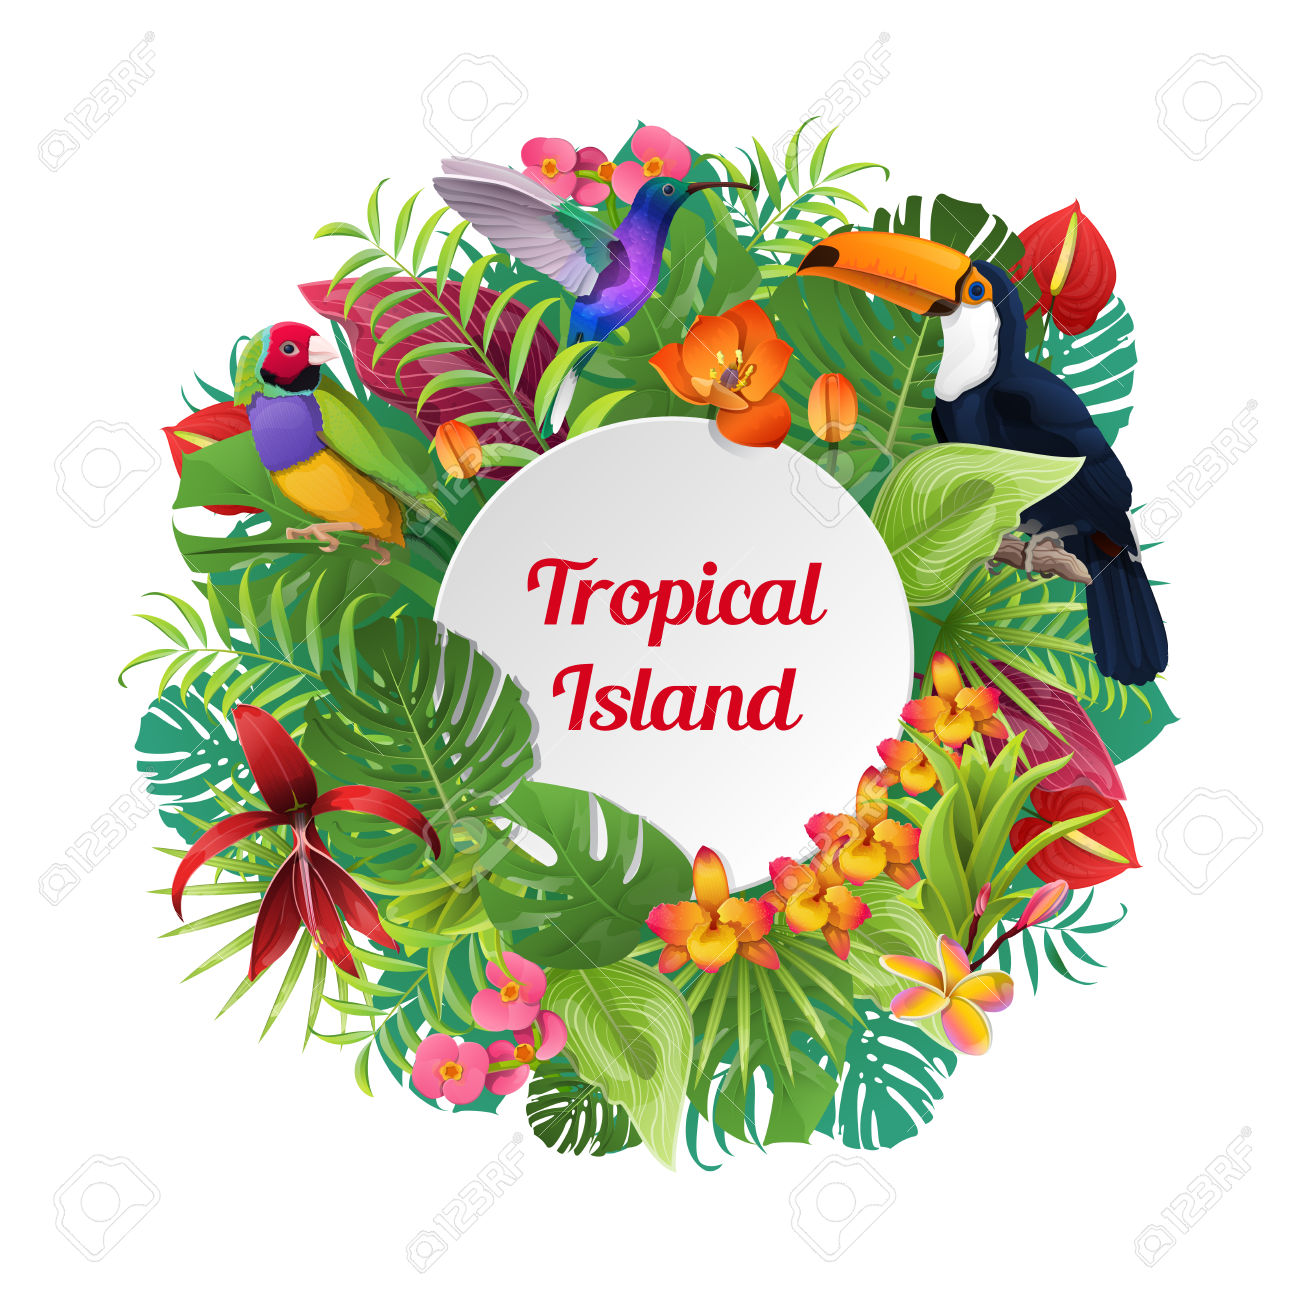 Tropical Island Word On Round Birds, Plants And Flowers Background.